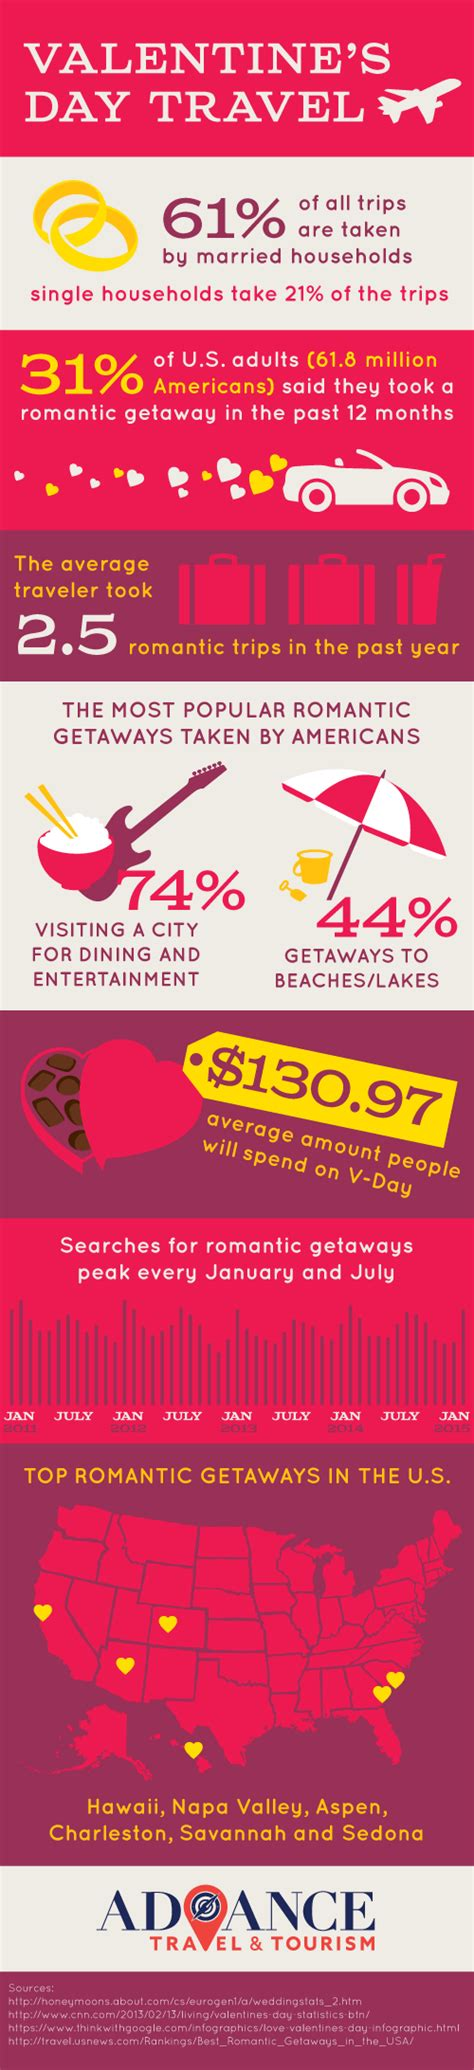 valentines trips is in the air americans are taking getaways